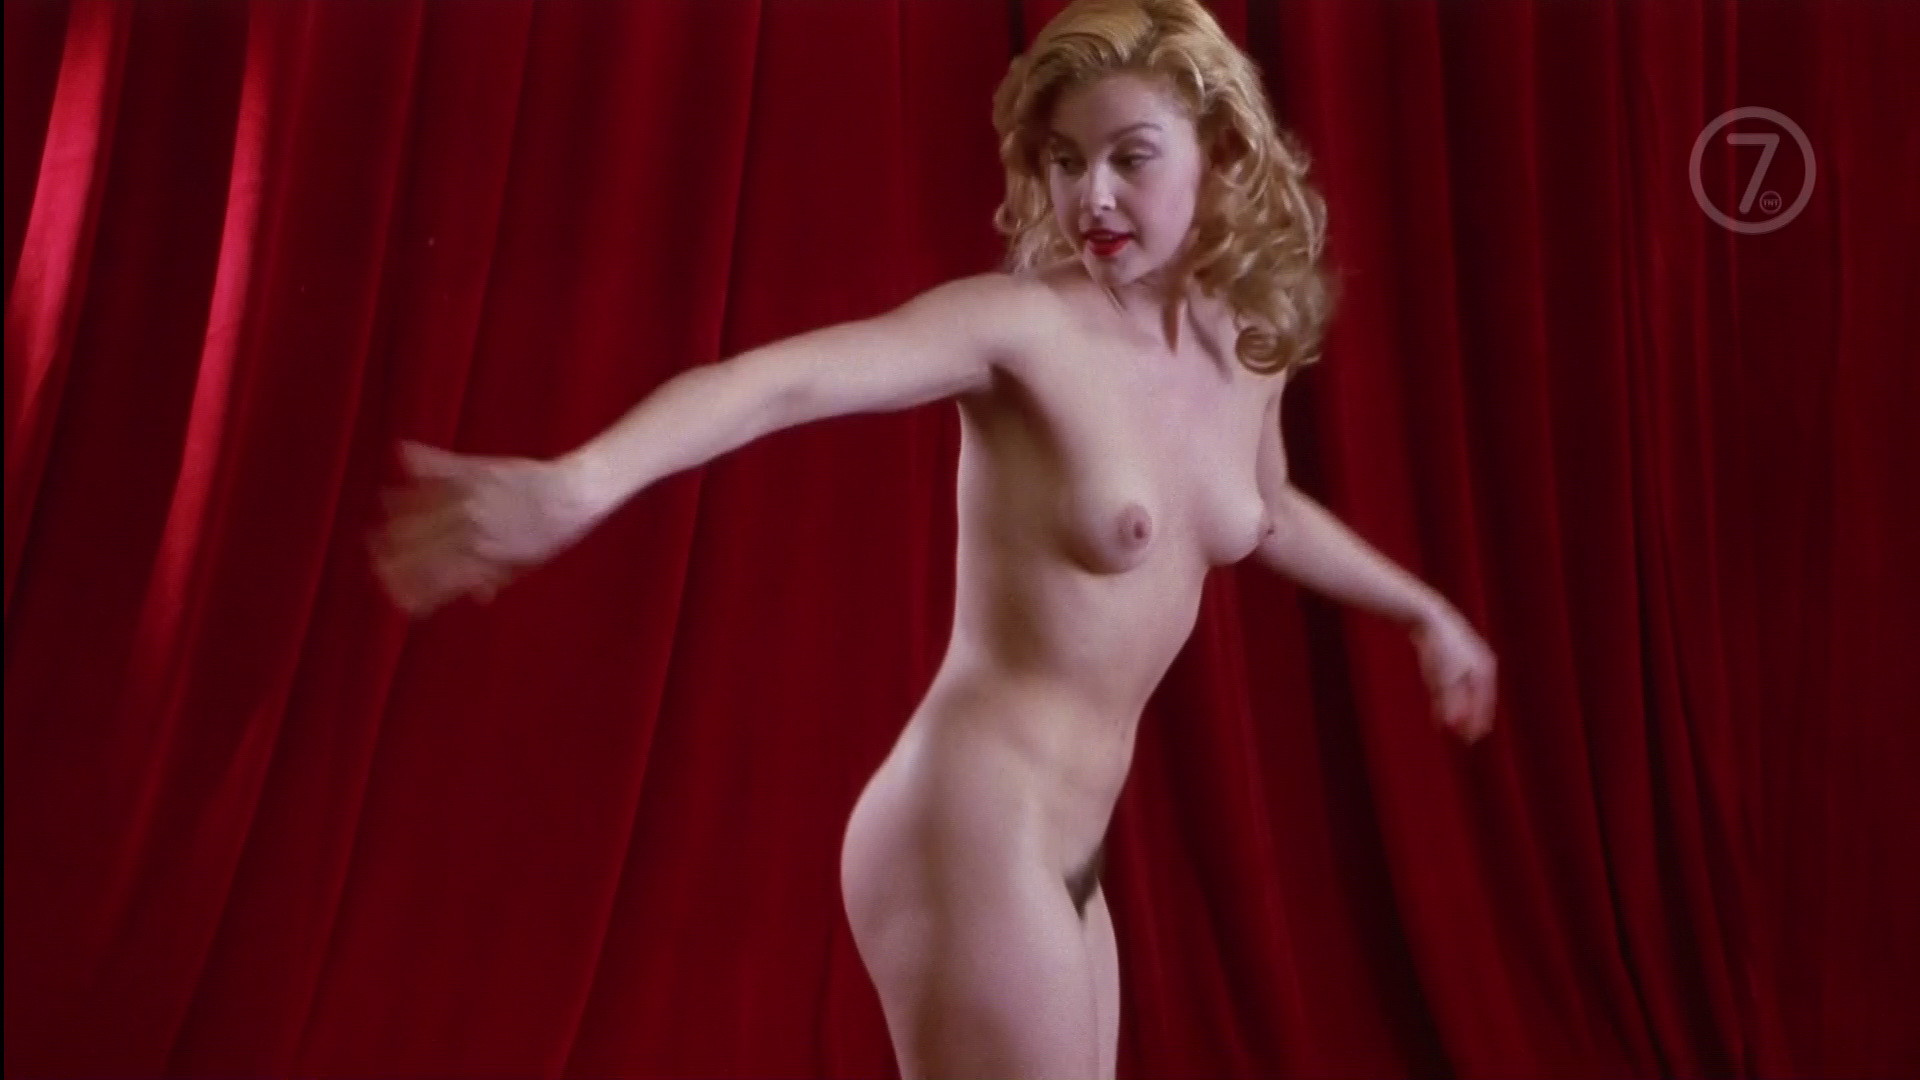 Ashley judd nude celebrity movie archive